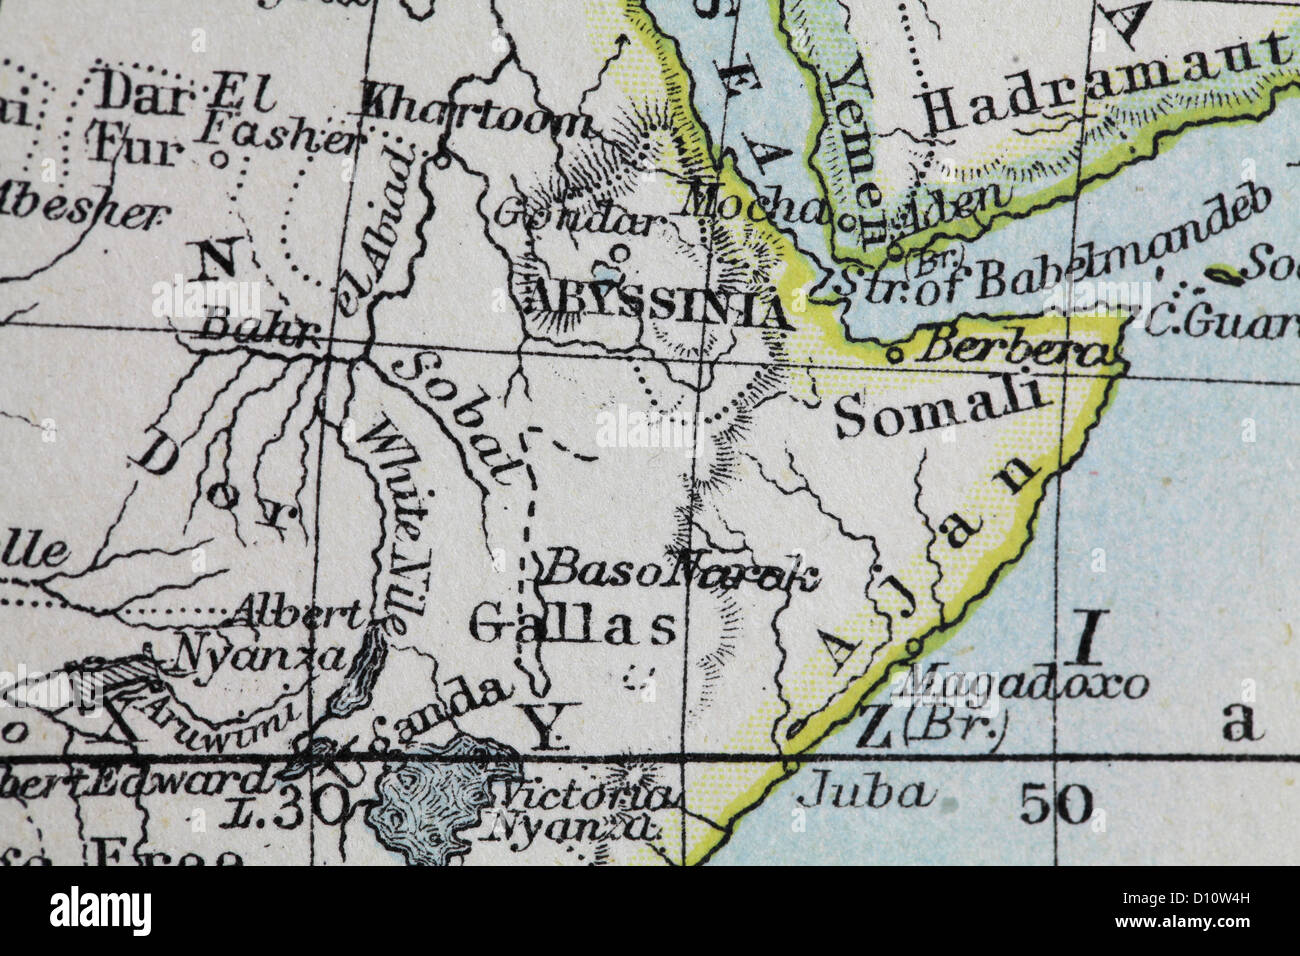 Old Map Of Ethiopia Stock Photos & Old Map Of Ethiopia Stock Images Zoomed Map Of Af on map of air force bases overseas, map of asia, map of sz, map of re, map of afr, map of africa, map of ic, map of ke, map of ta, map of ggc, map of mh, map of sh, map of spangdahlem air force base, map of cl, map of gl, map of ci, map of afganis, map of gh, map of sn, map of ei,